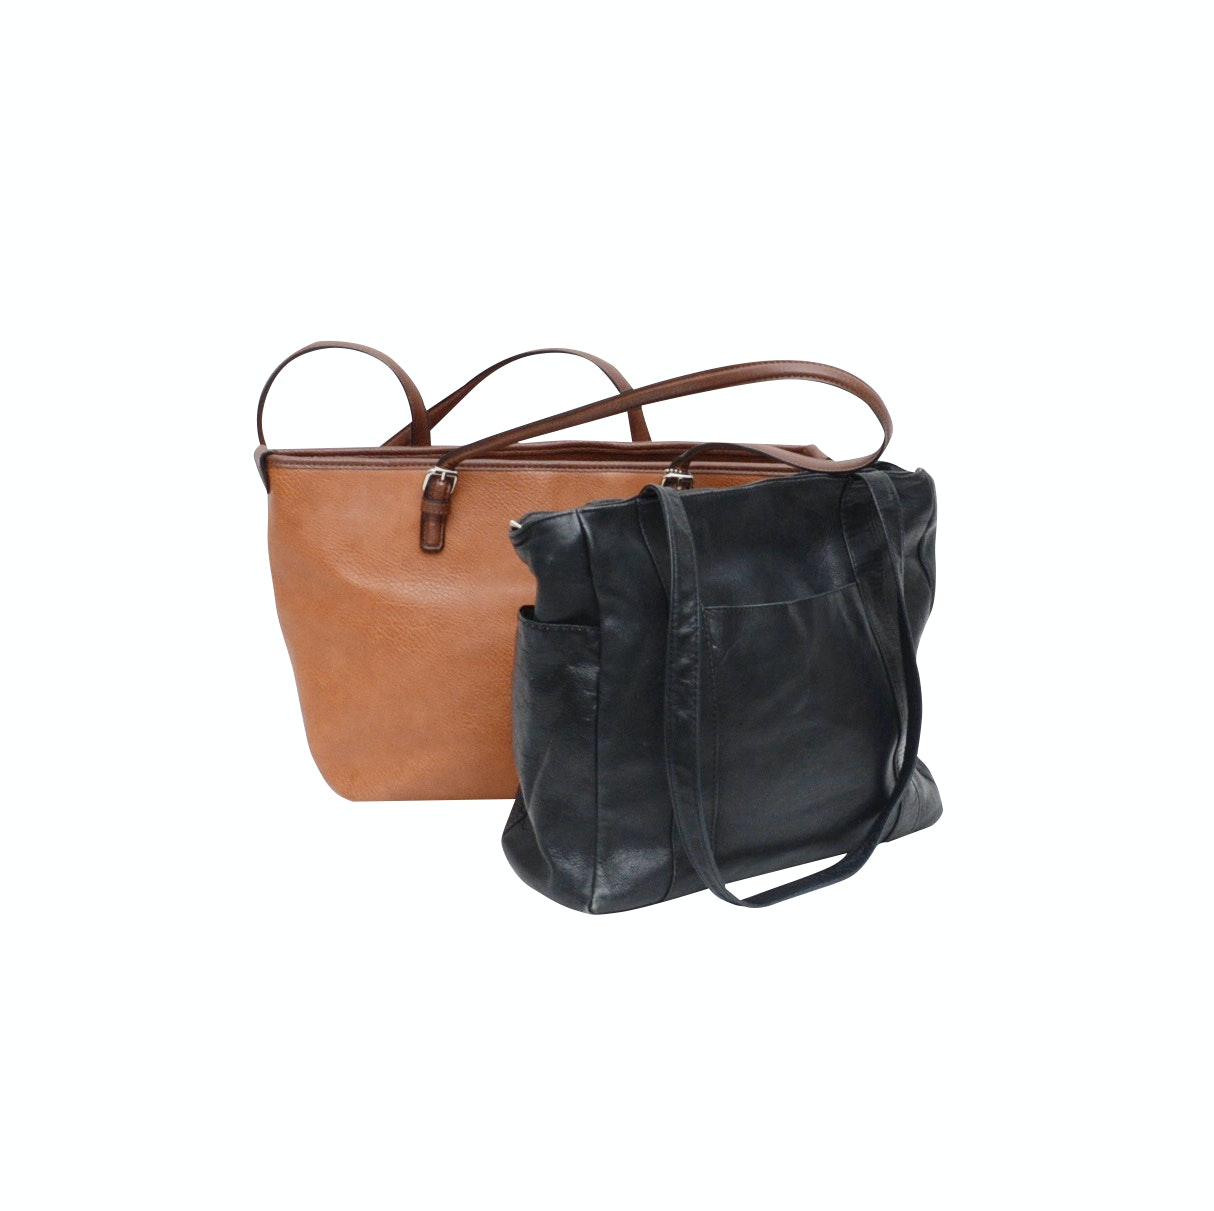 Bueno Tan Grained Leather Shoulder Bag and Black Grained Leather Shoulder Bag